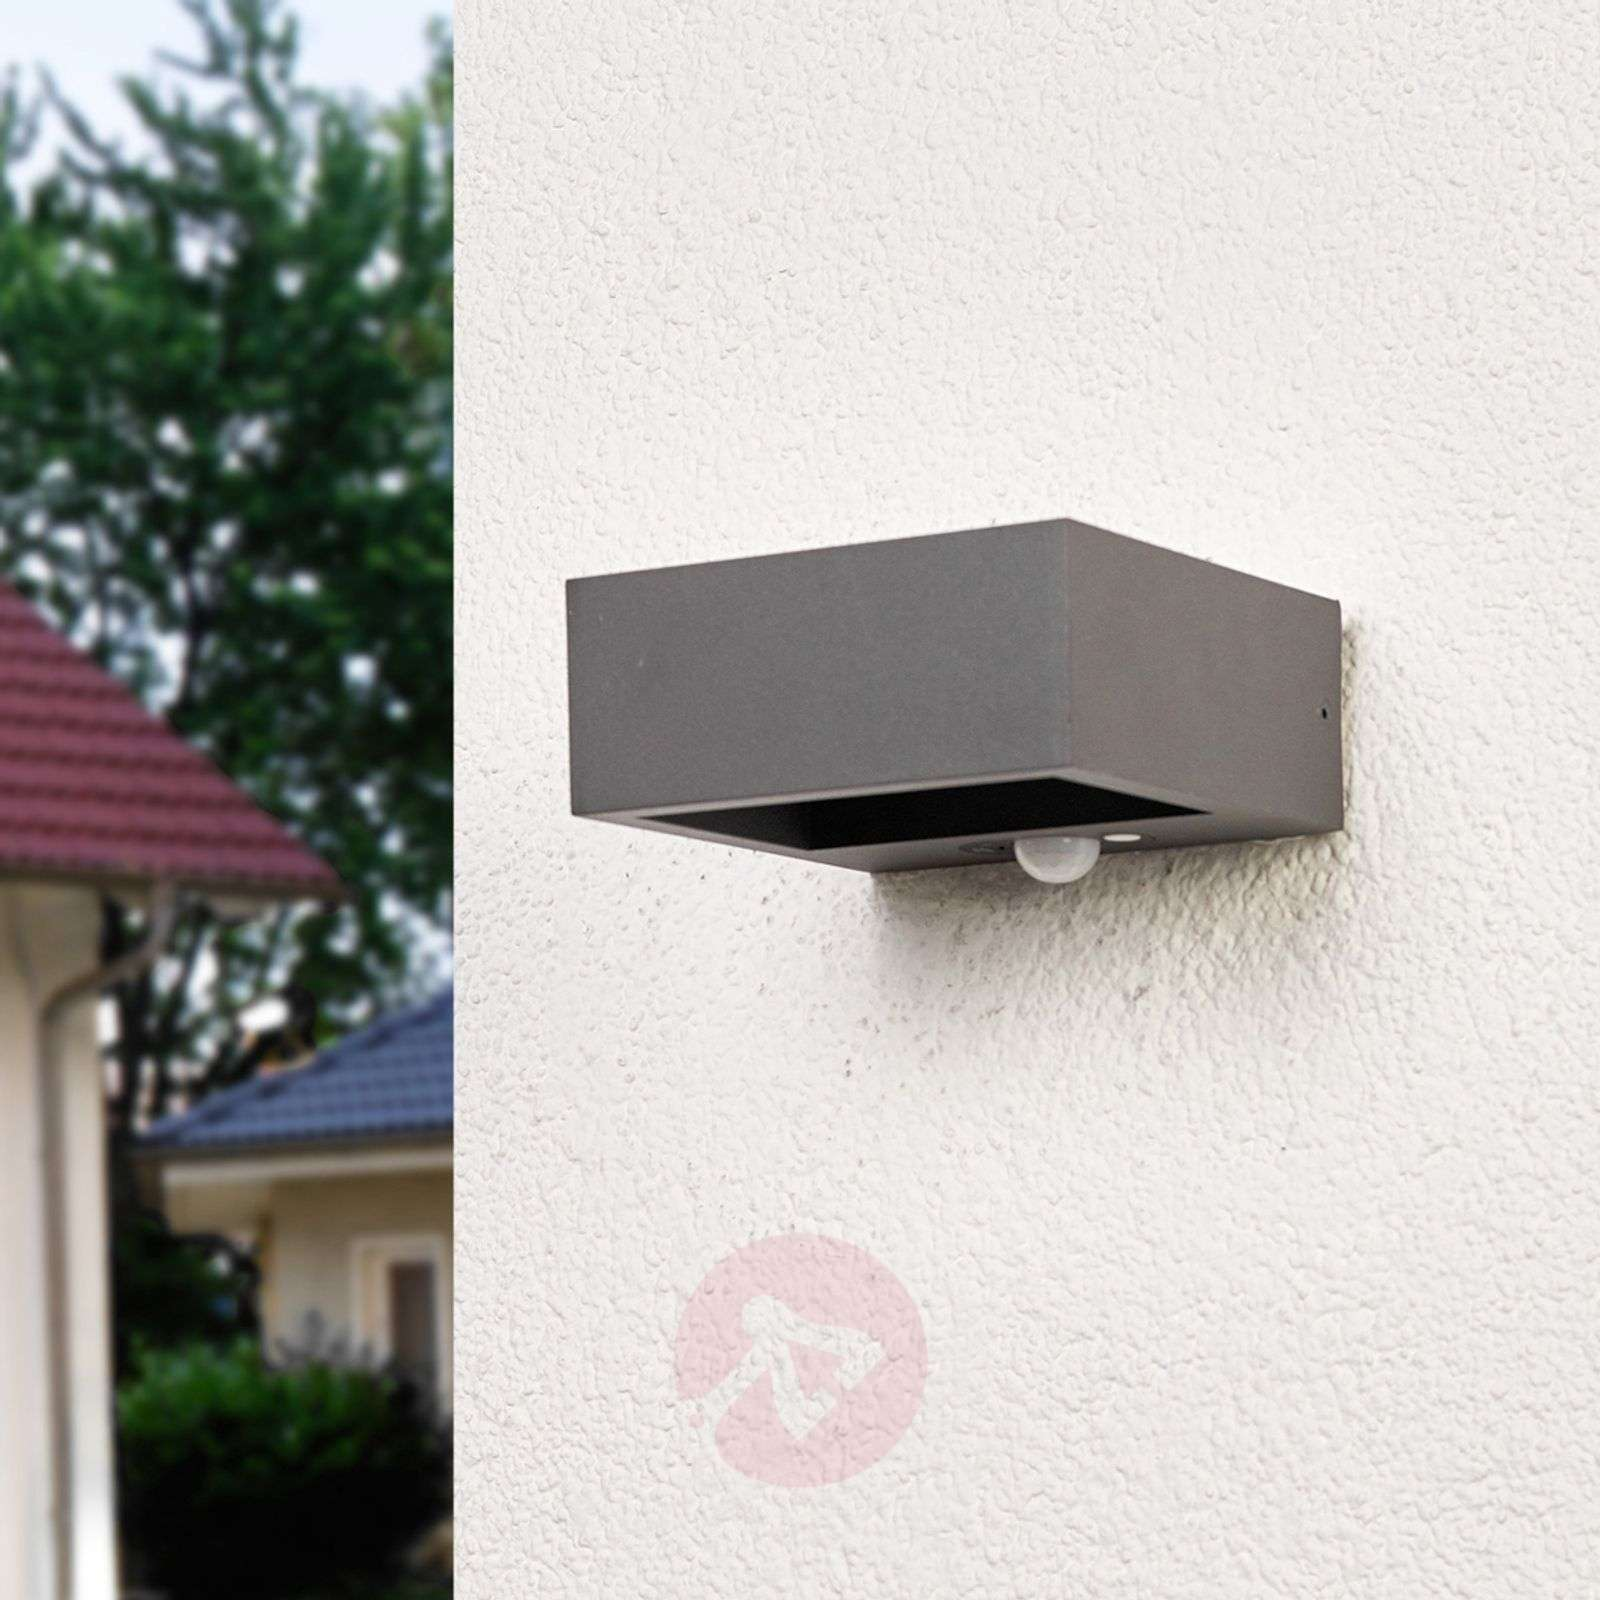 Outside Wall Lights Solar Powered : Solar-powered LED outdoor wall light Mahra, sensor Lights.co.uk